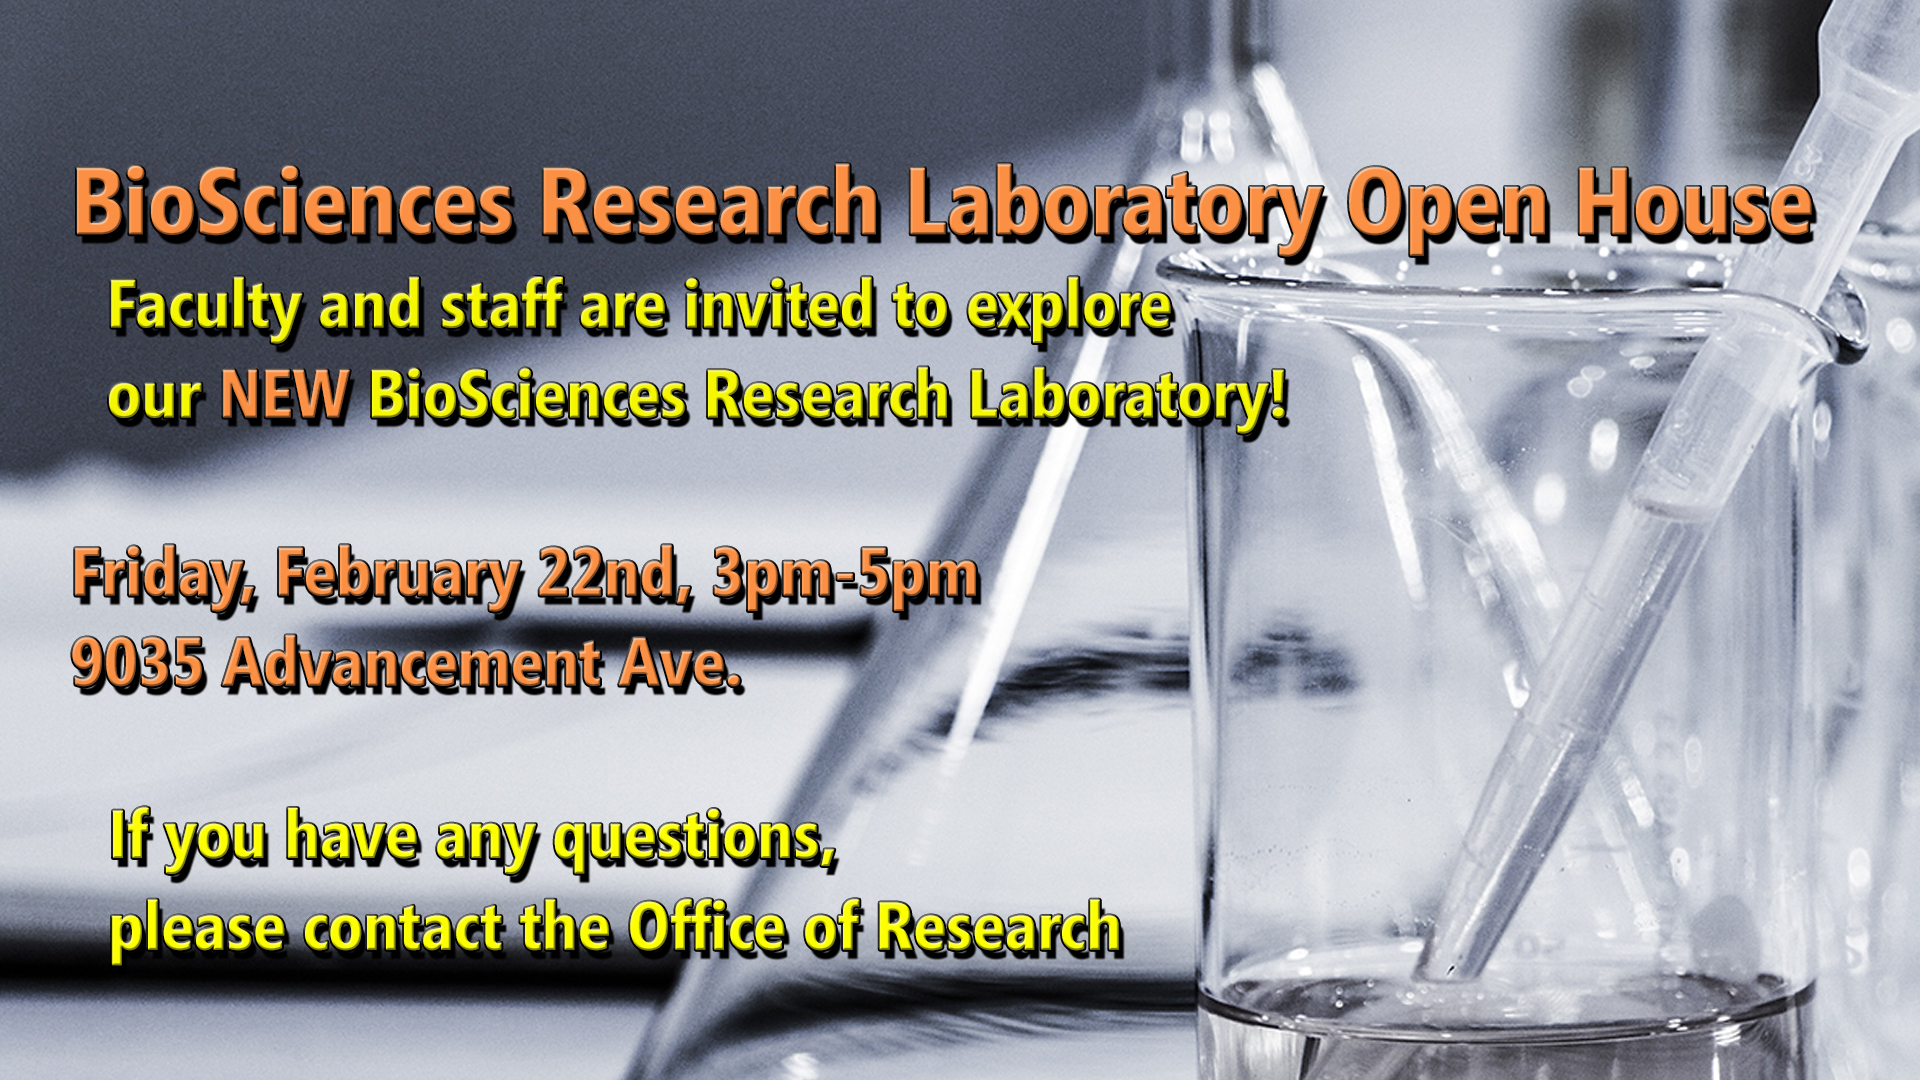 BioSciences Lab Open House 02/22 3-5